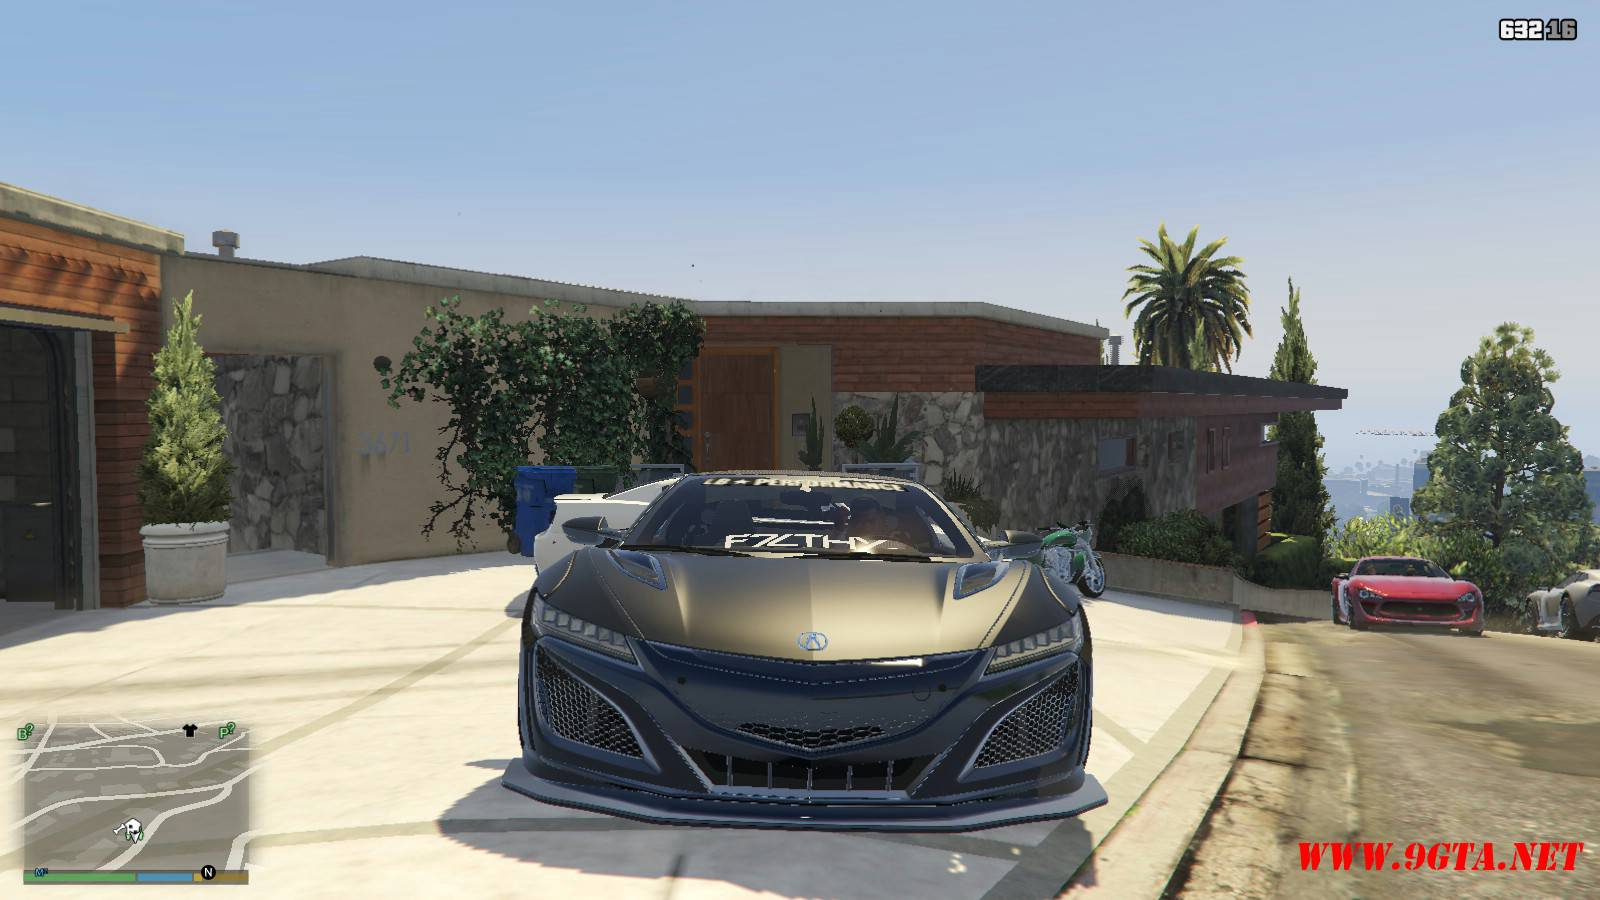 Acura NSX Liberty Walk Mod For GTA5 (11)